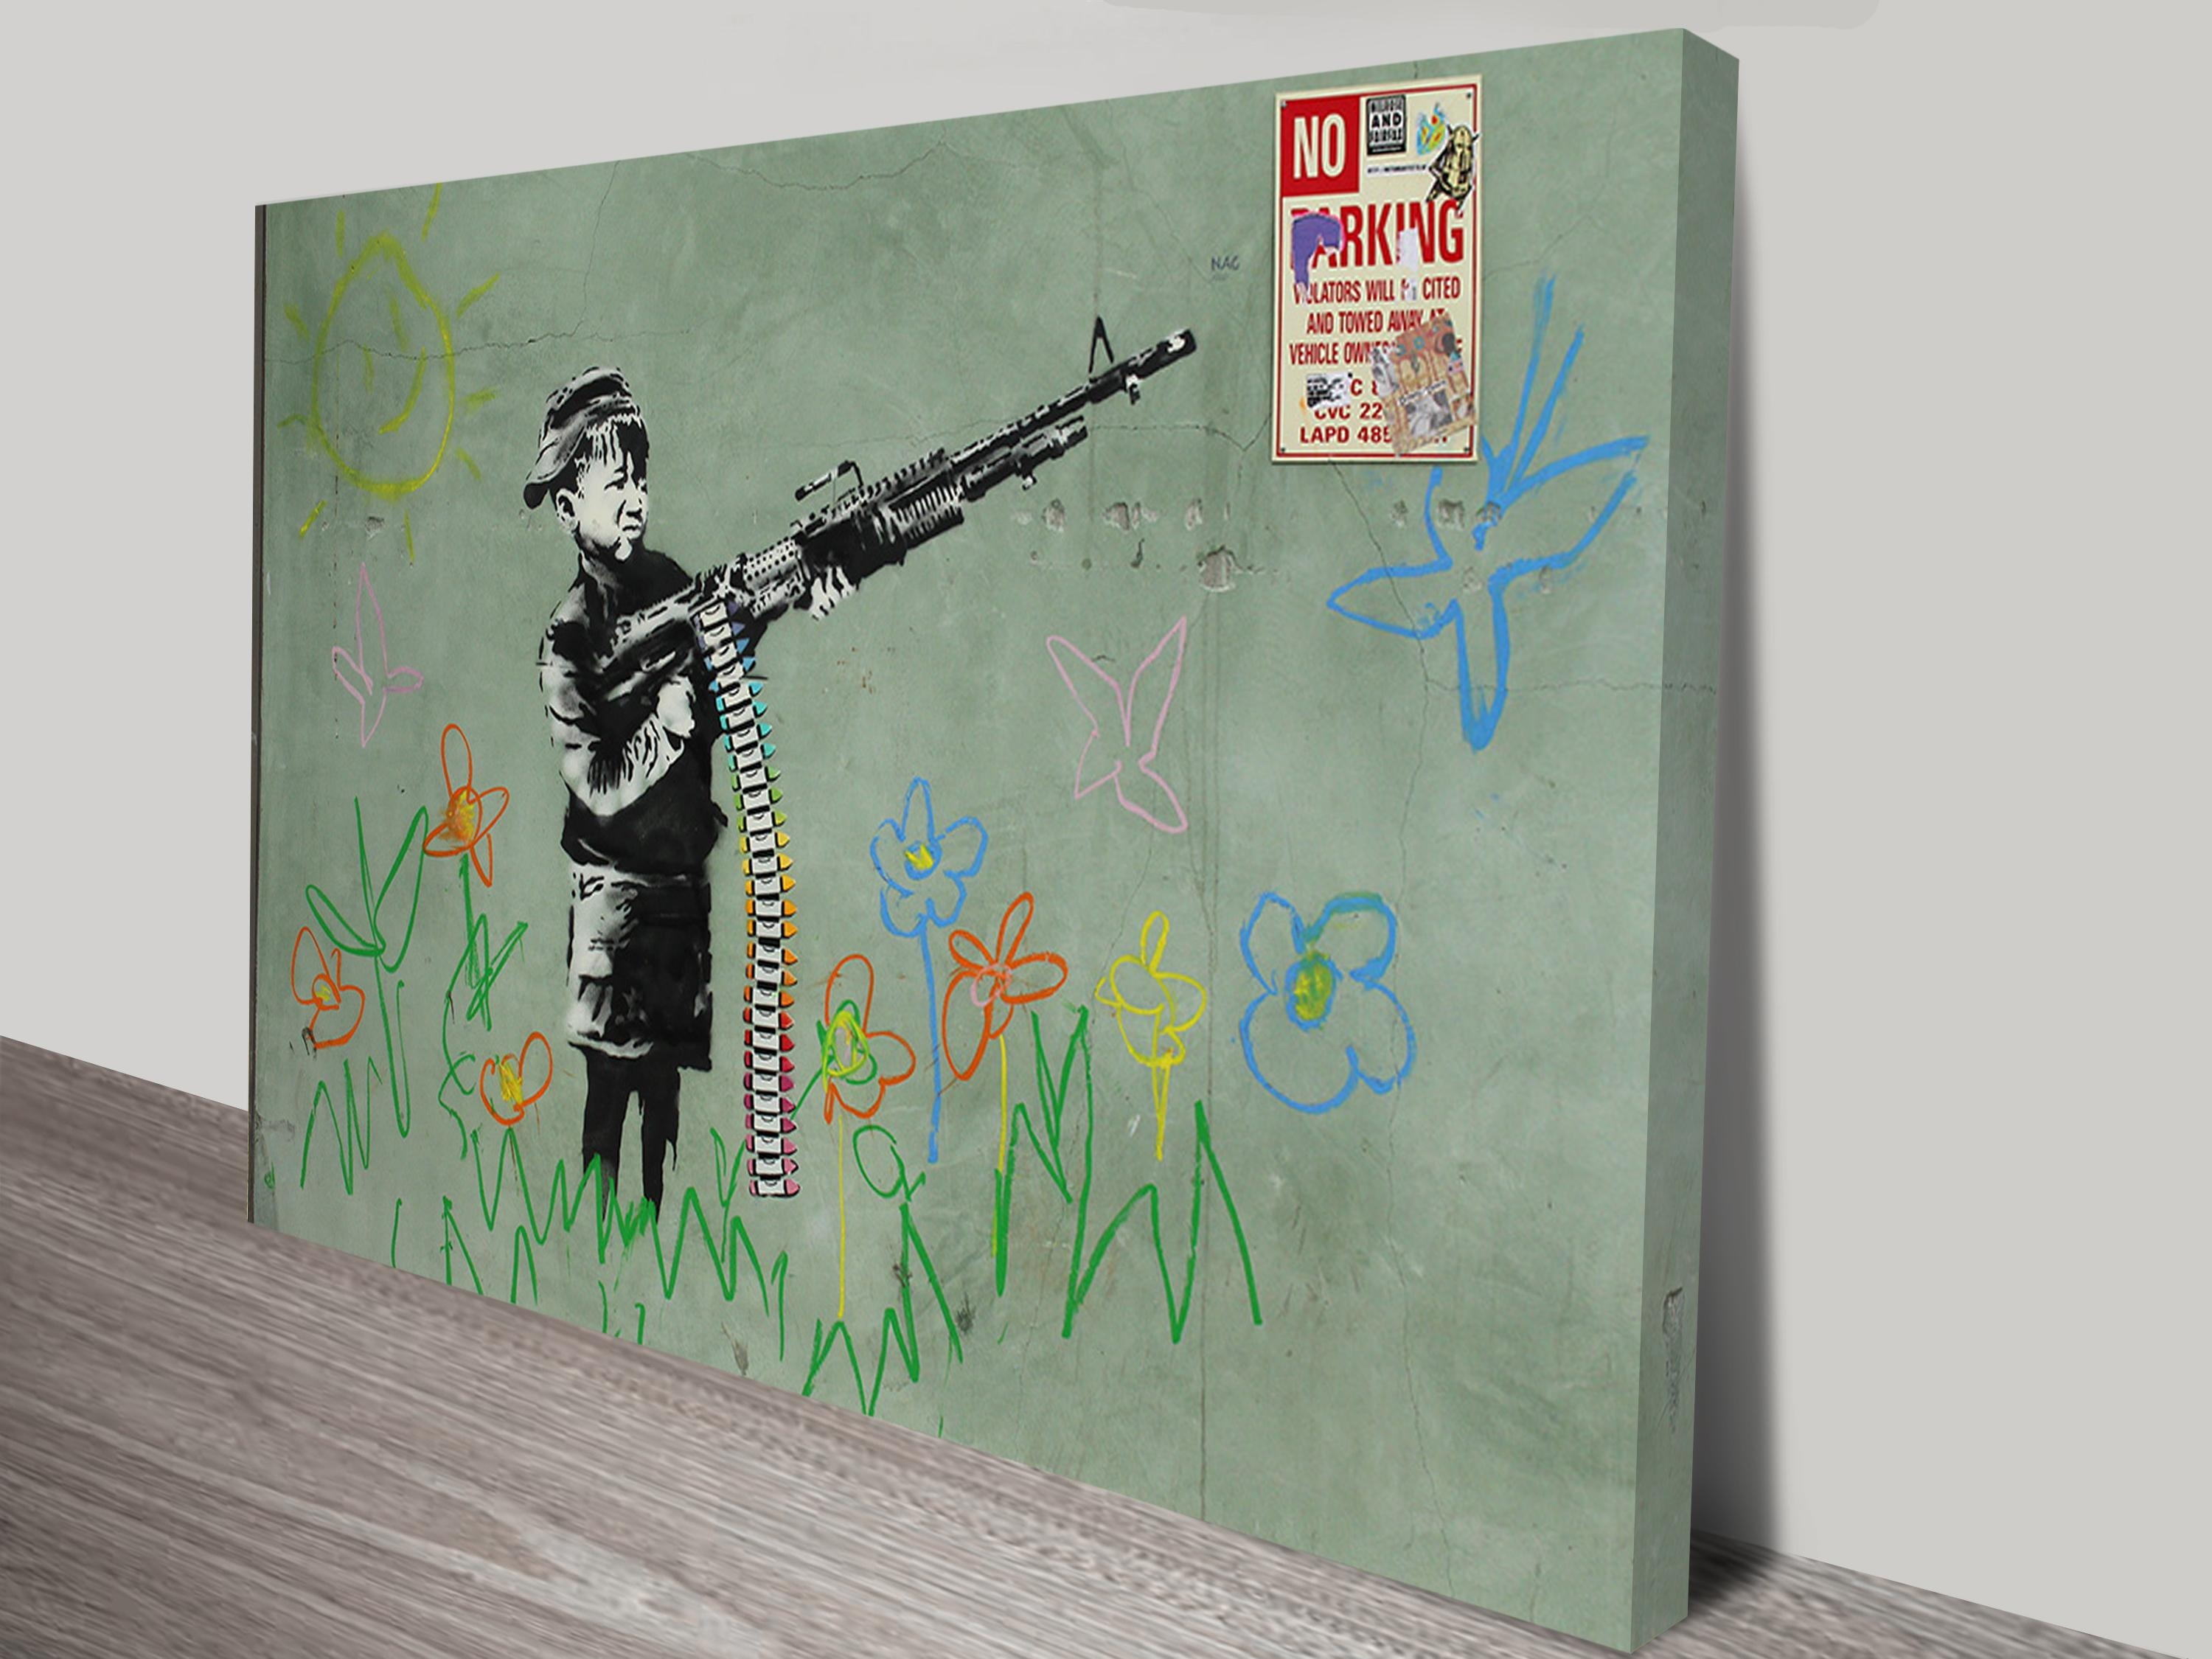 Child Soldiers Wall Art Print Regarding Banksy Wall Art Canvas (Image 14 of 20)